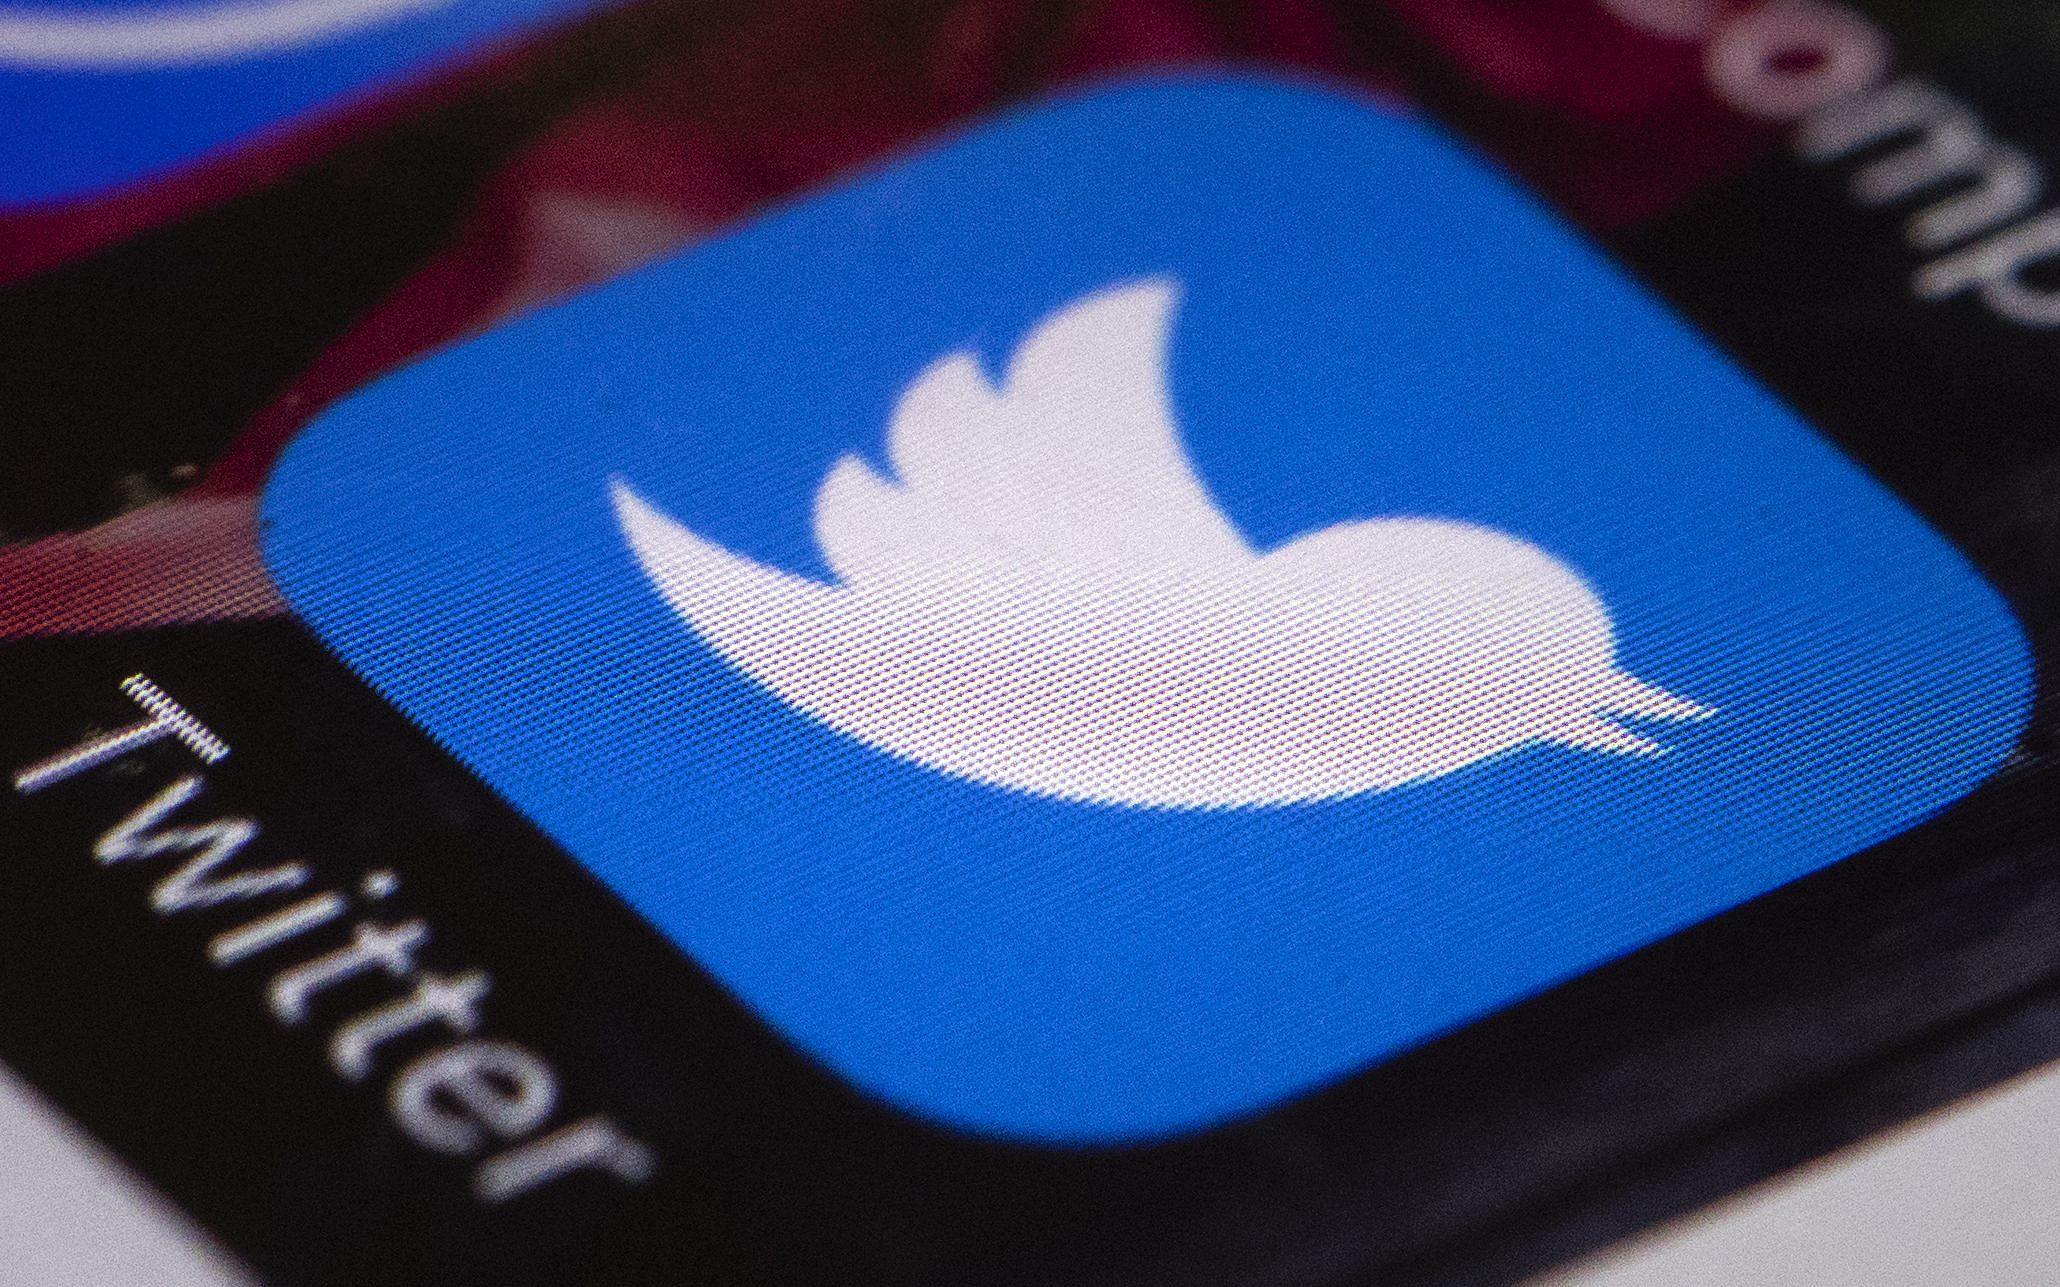 Twitter warns some accounts may lose verification